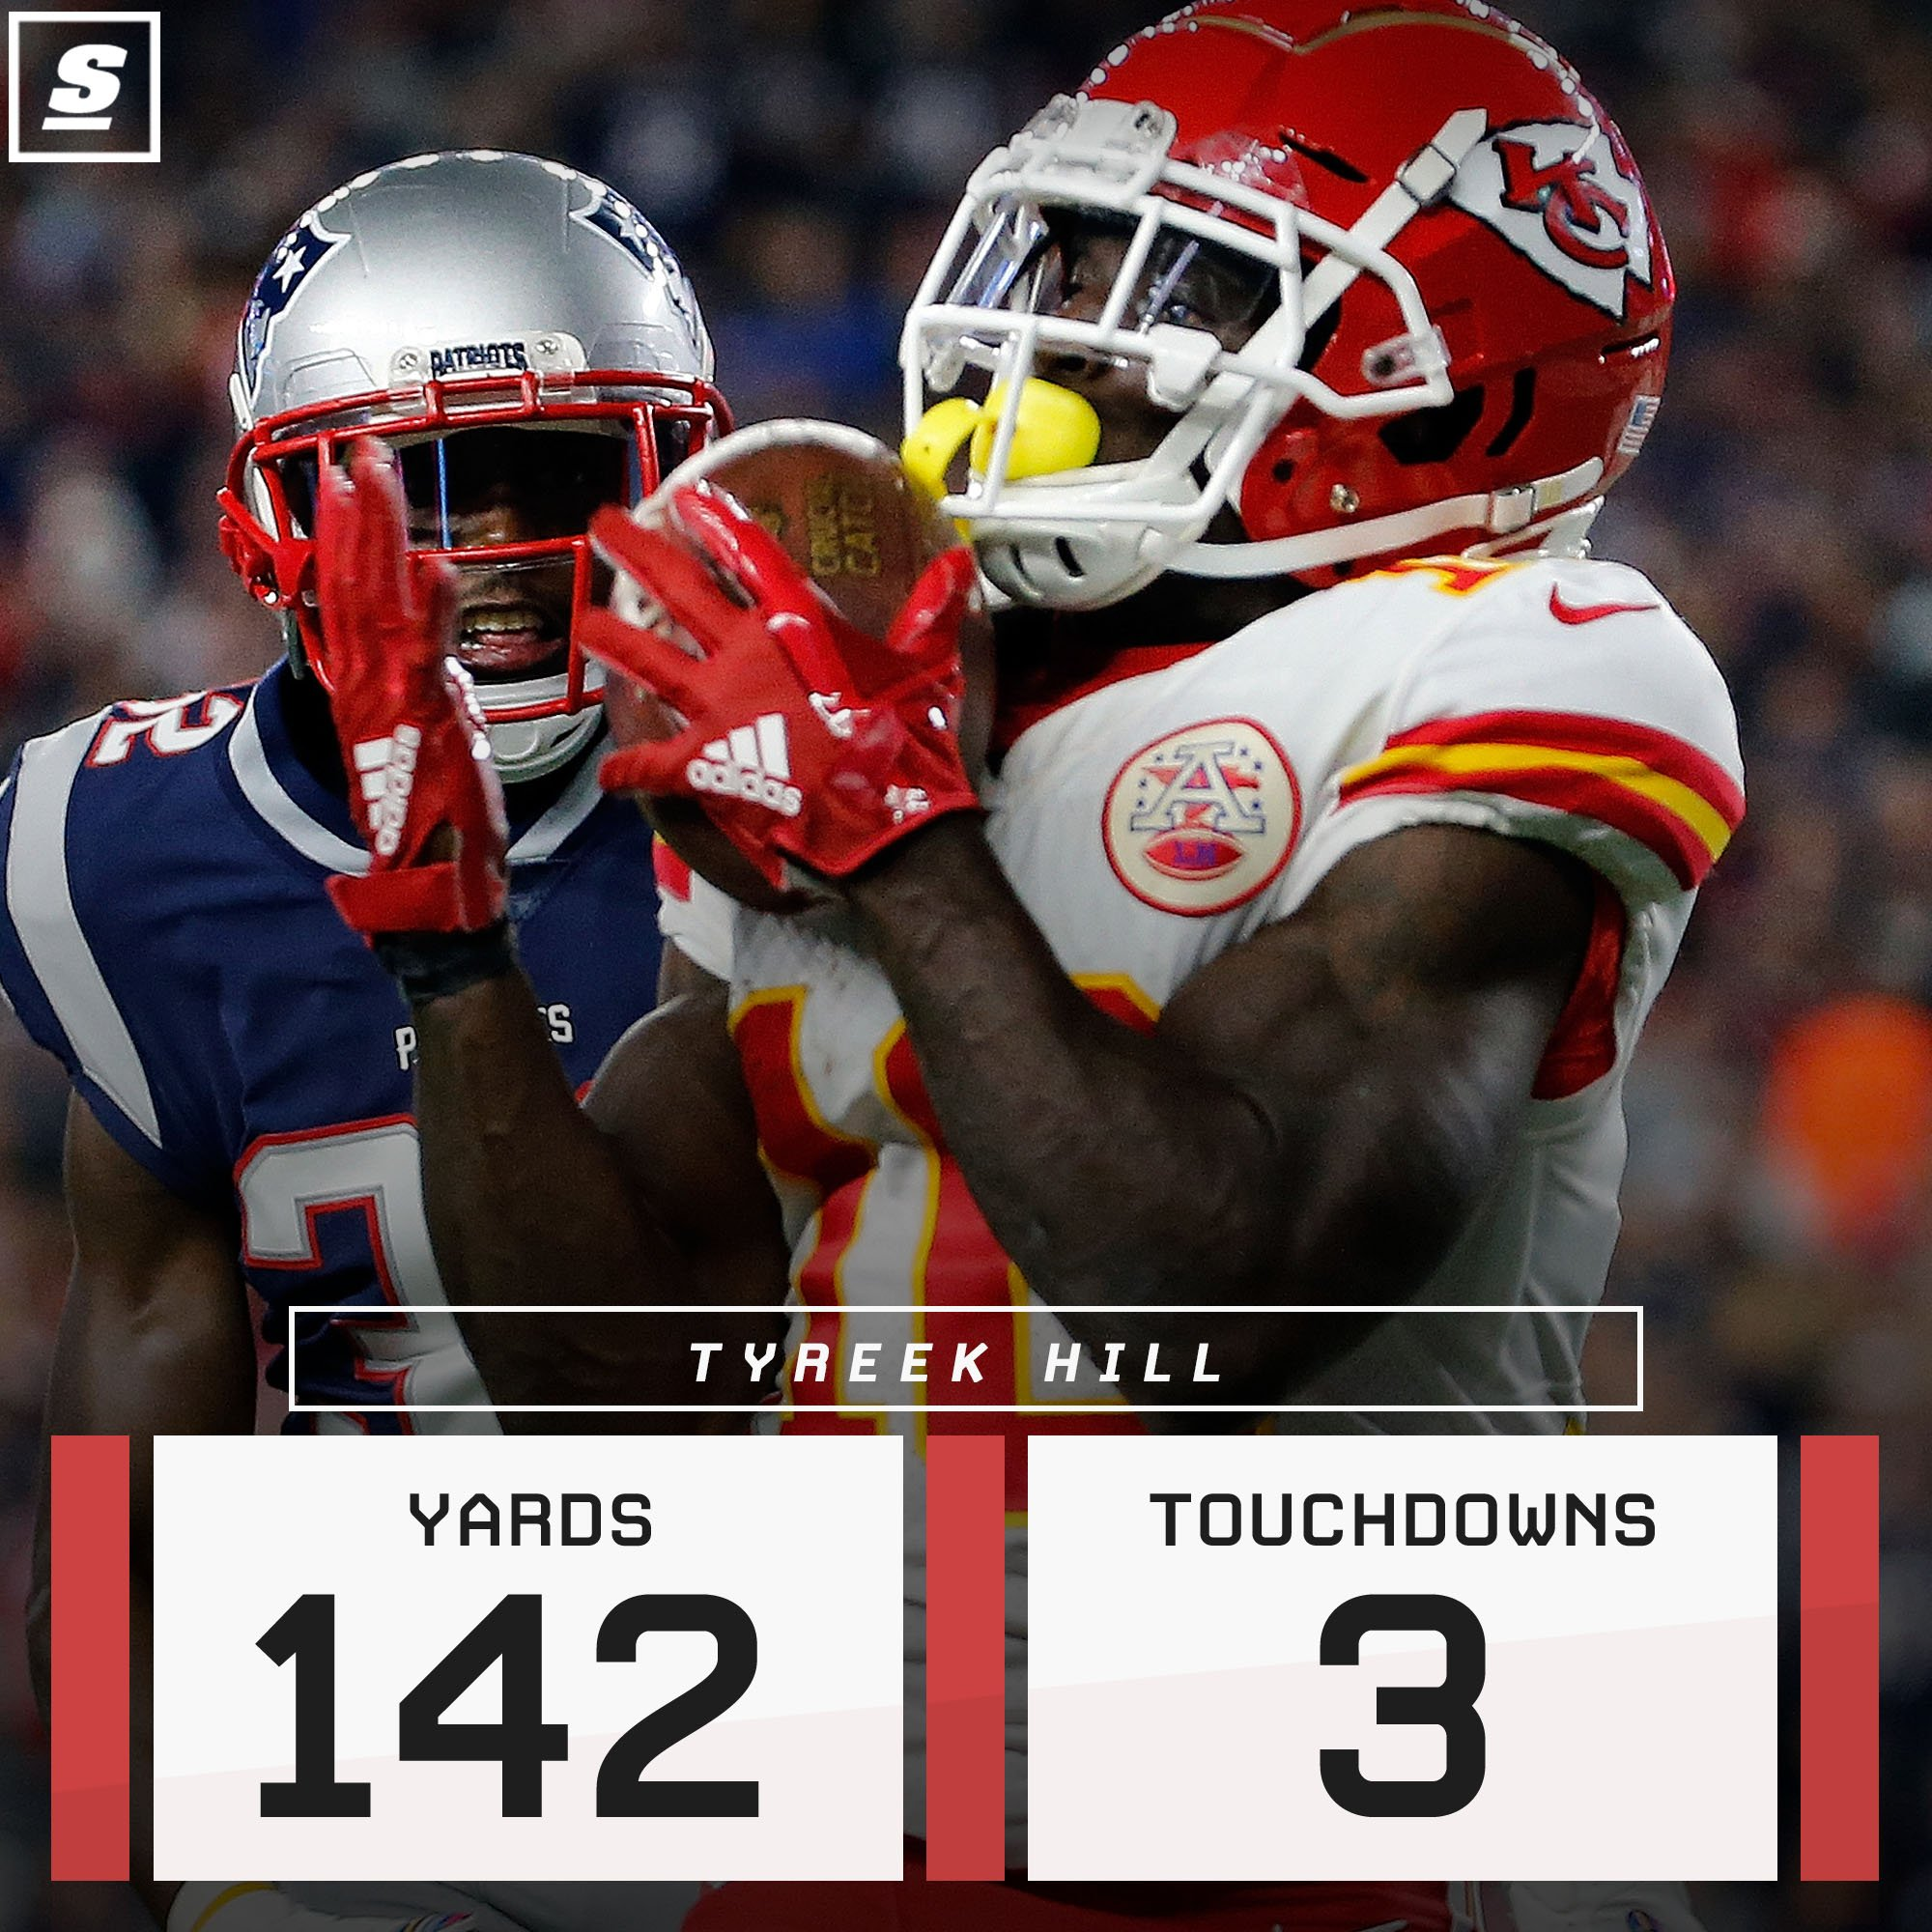 .@cheetah had a decent game also. �� �� https://t.co/0uopXPlbI3